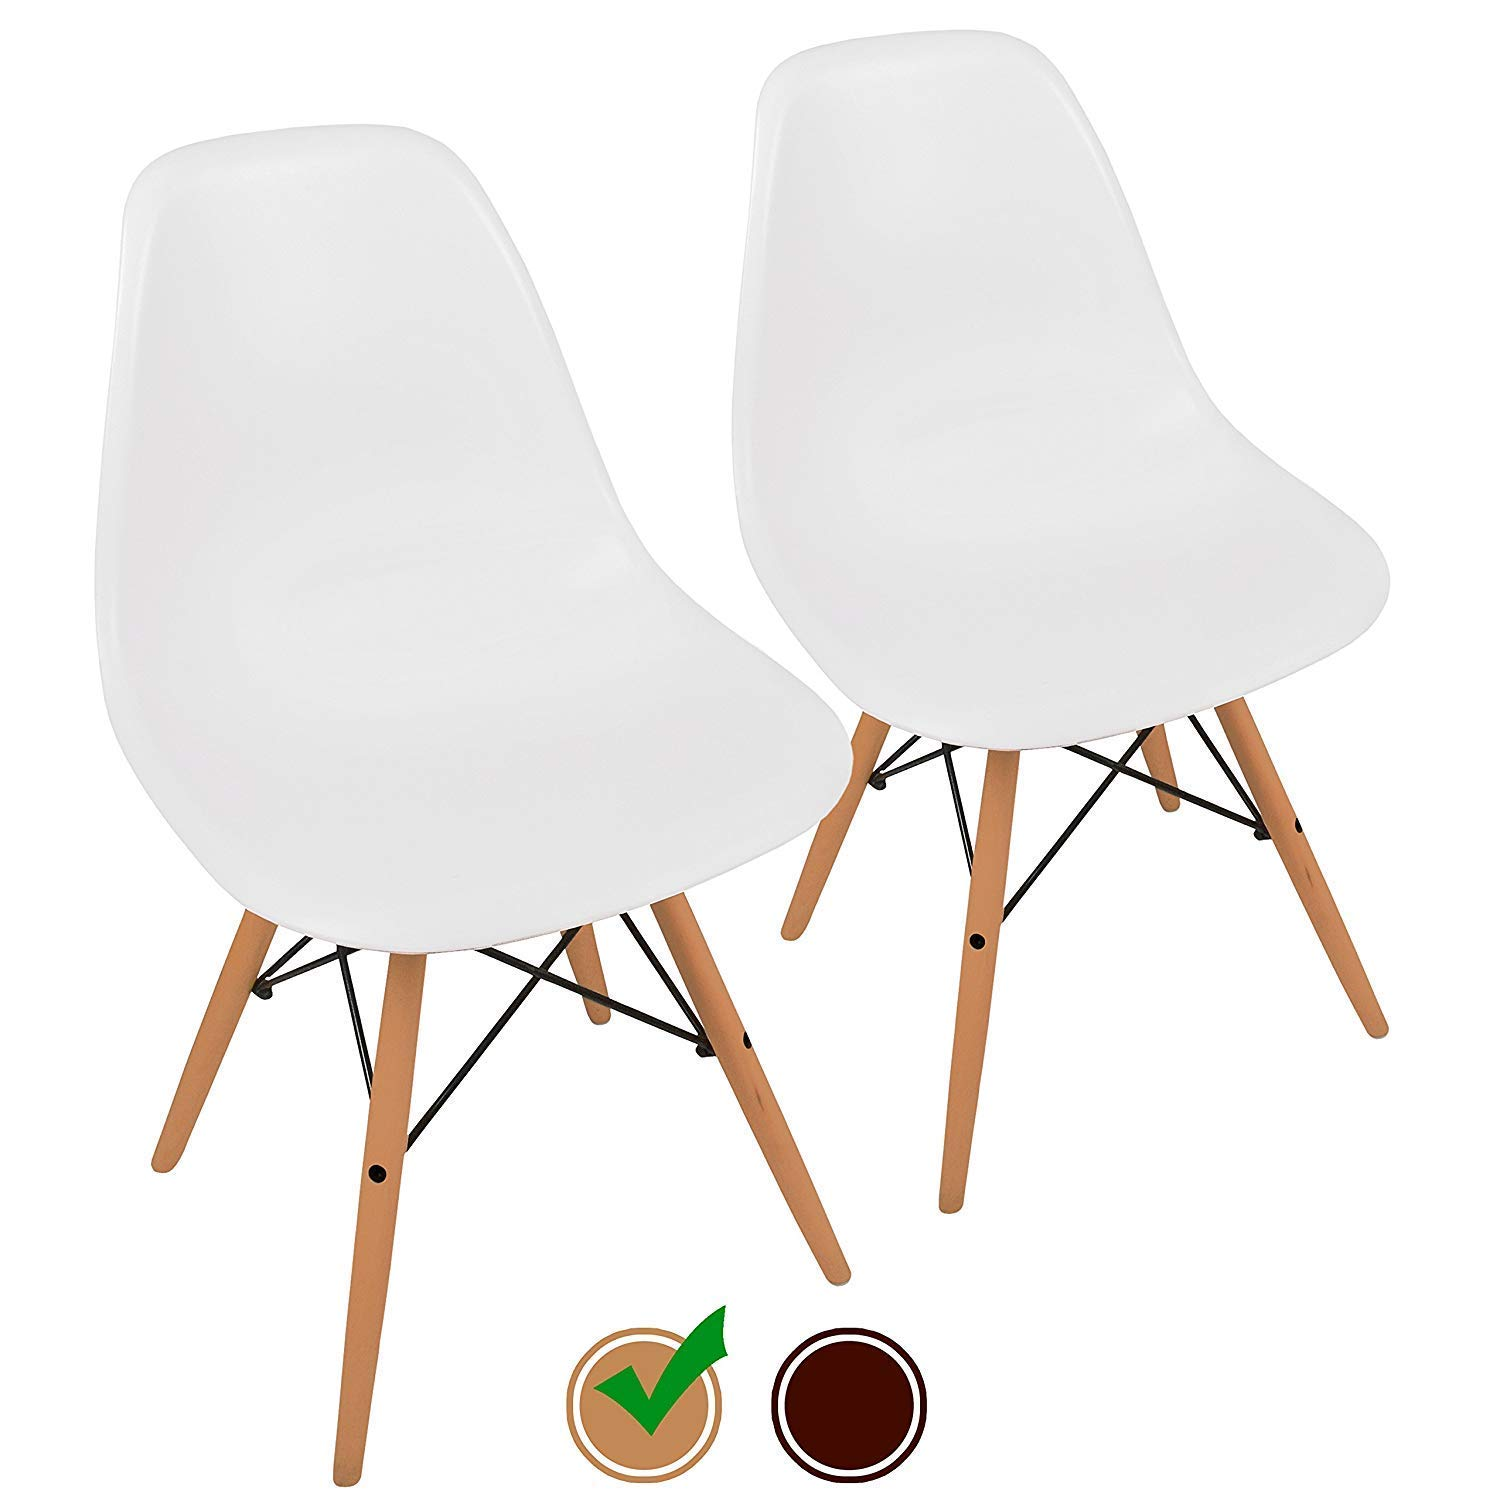 UrbanMod Mid Century Style Easy Assemble' Modern DSW ErgoFlex ABS Plastic and 'One Wipe Wonder' Cleaning Comfortable White Dining Chairs Meets 5-Star, 2, Natural Legs by UrbanMod